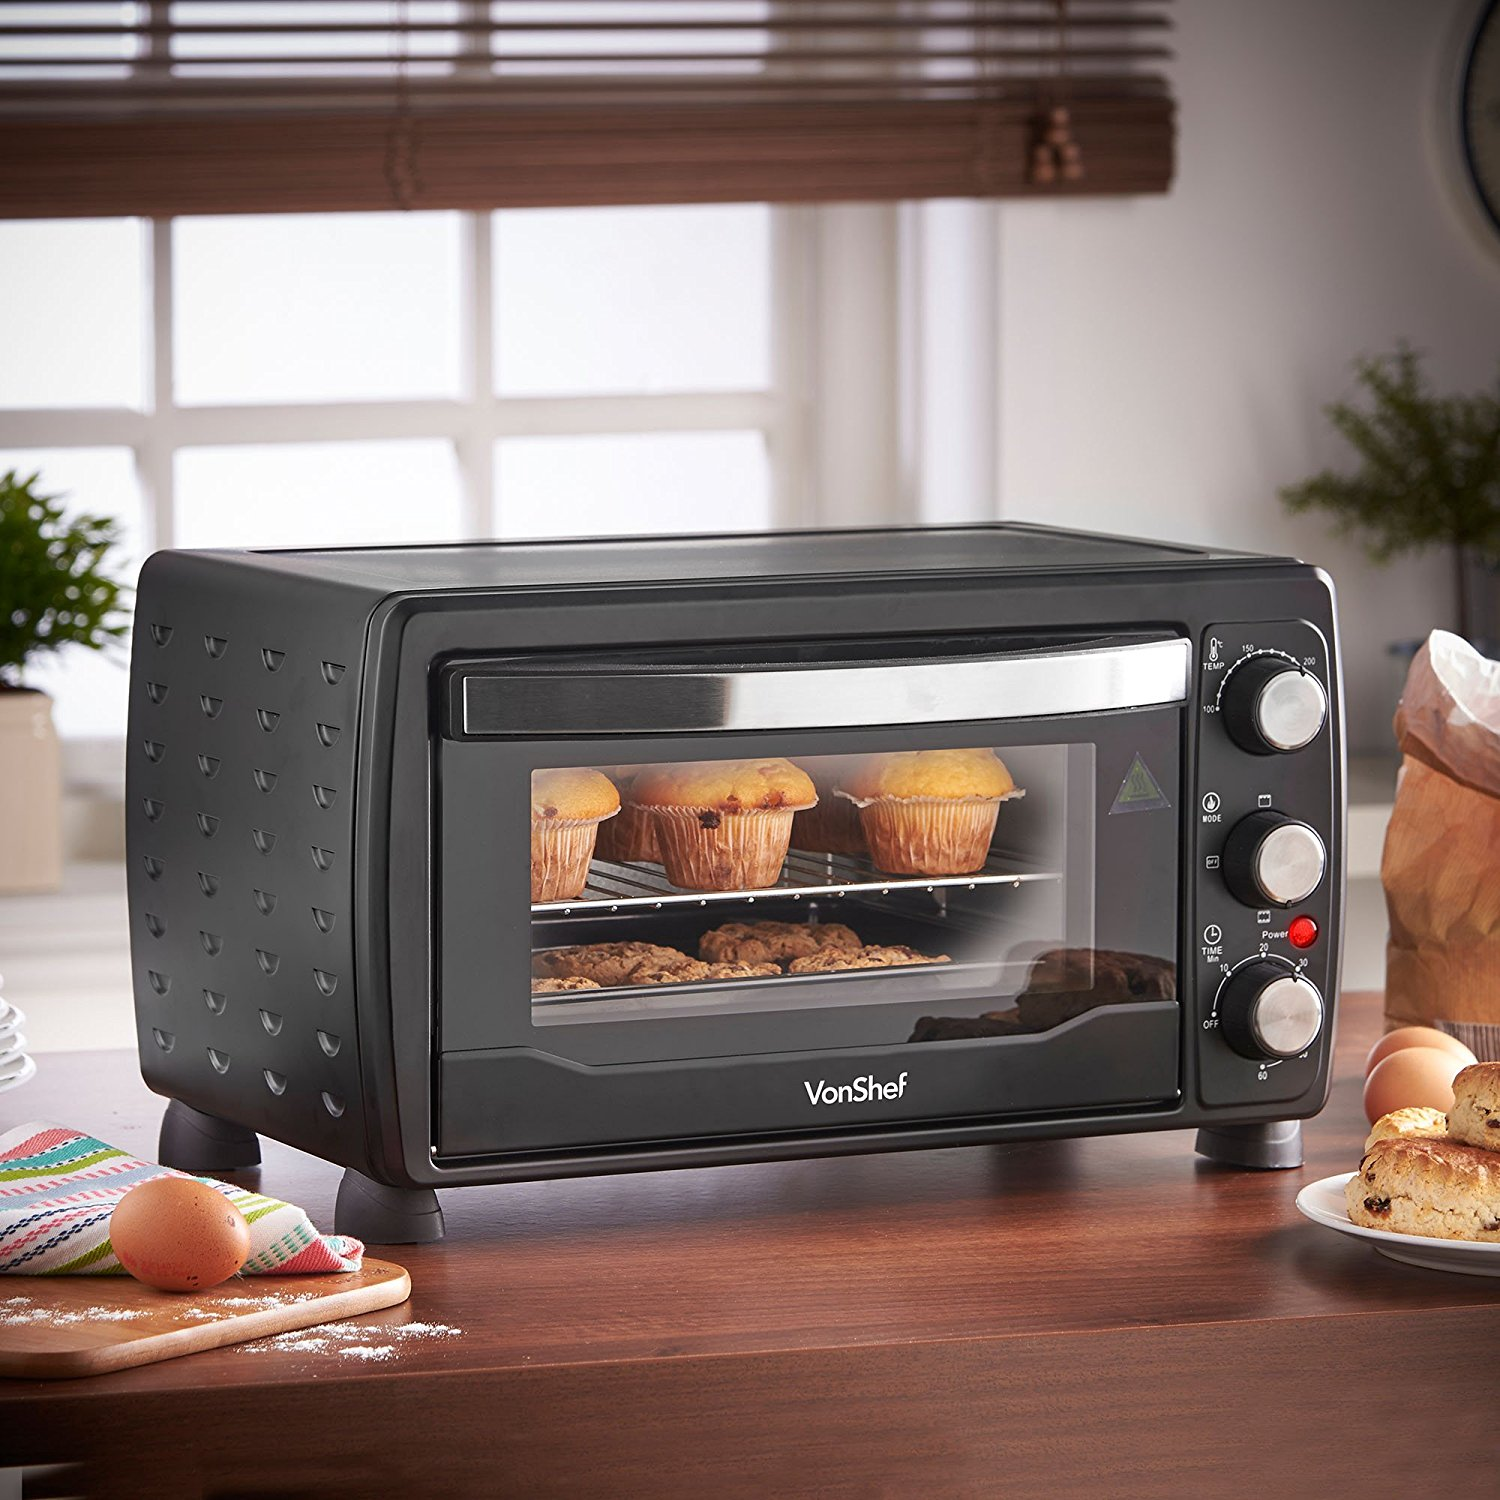 Countertop Oven Grill : Vonshef 220 volts 19 Liter Toaster oven / Grill 1400 watts with Baking ...